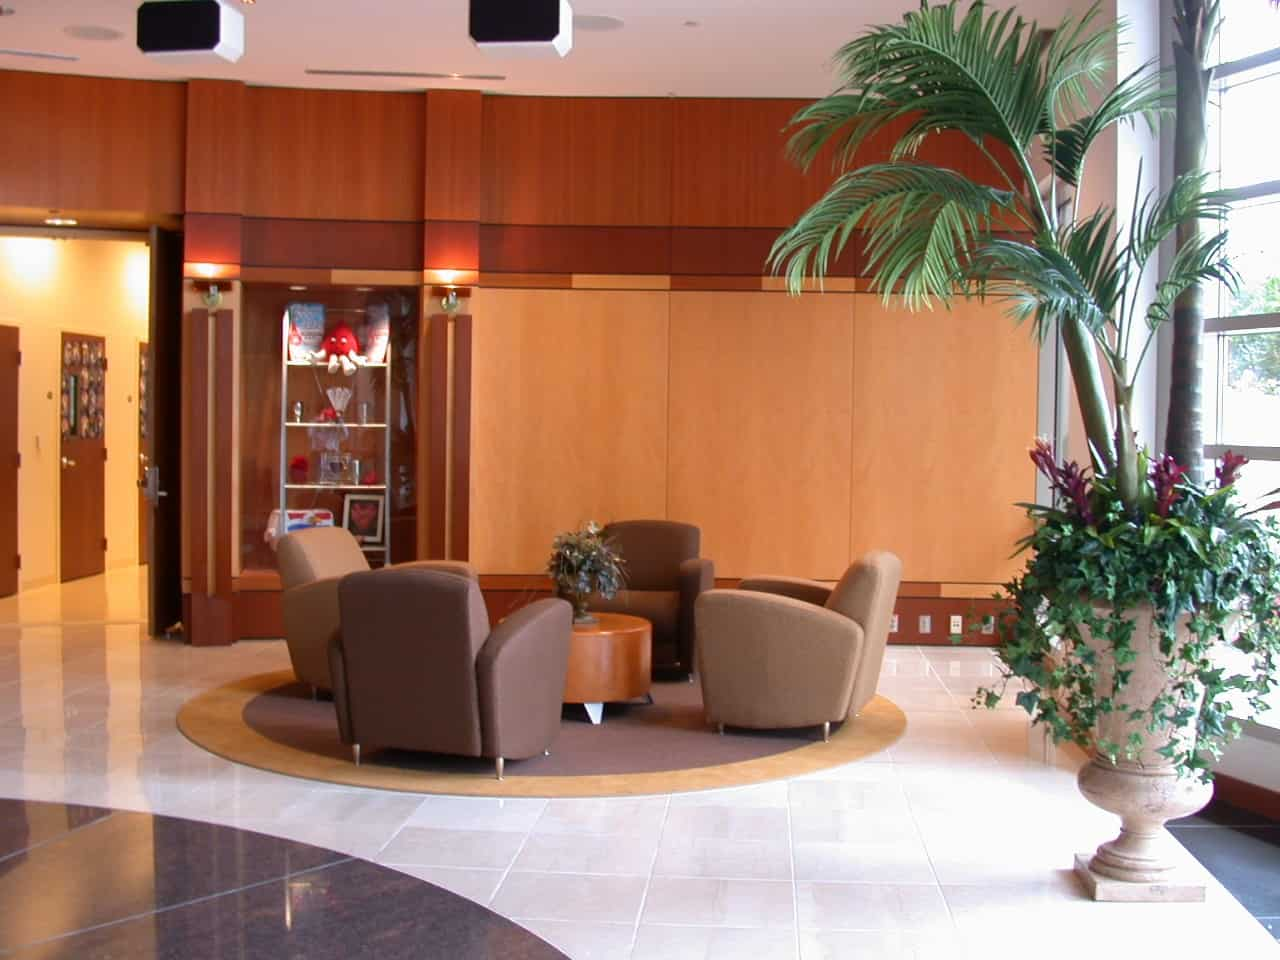 Florida's Blood Centers Corporate Headquarters